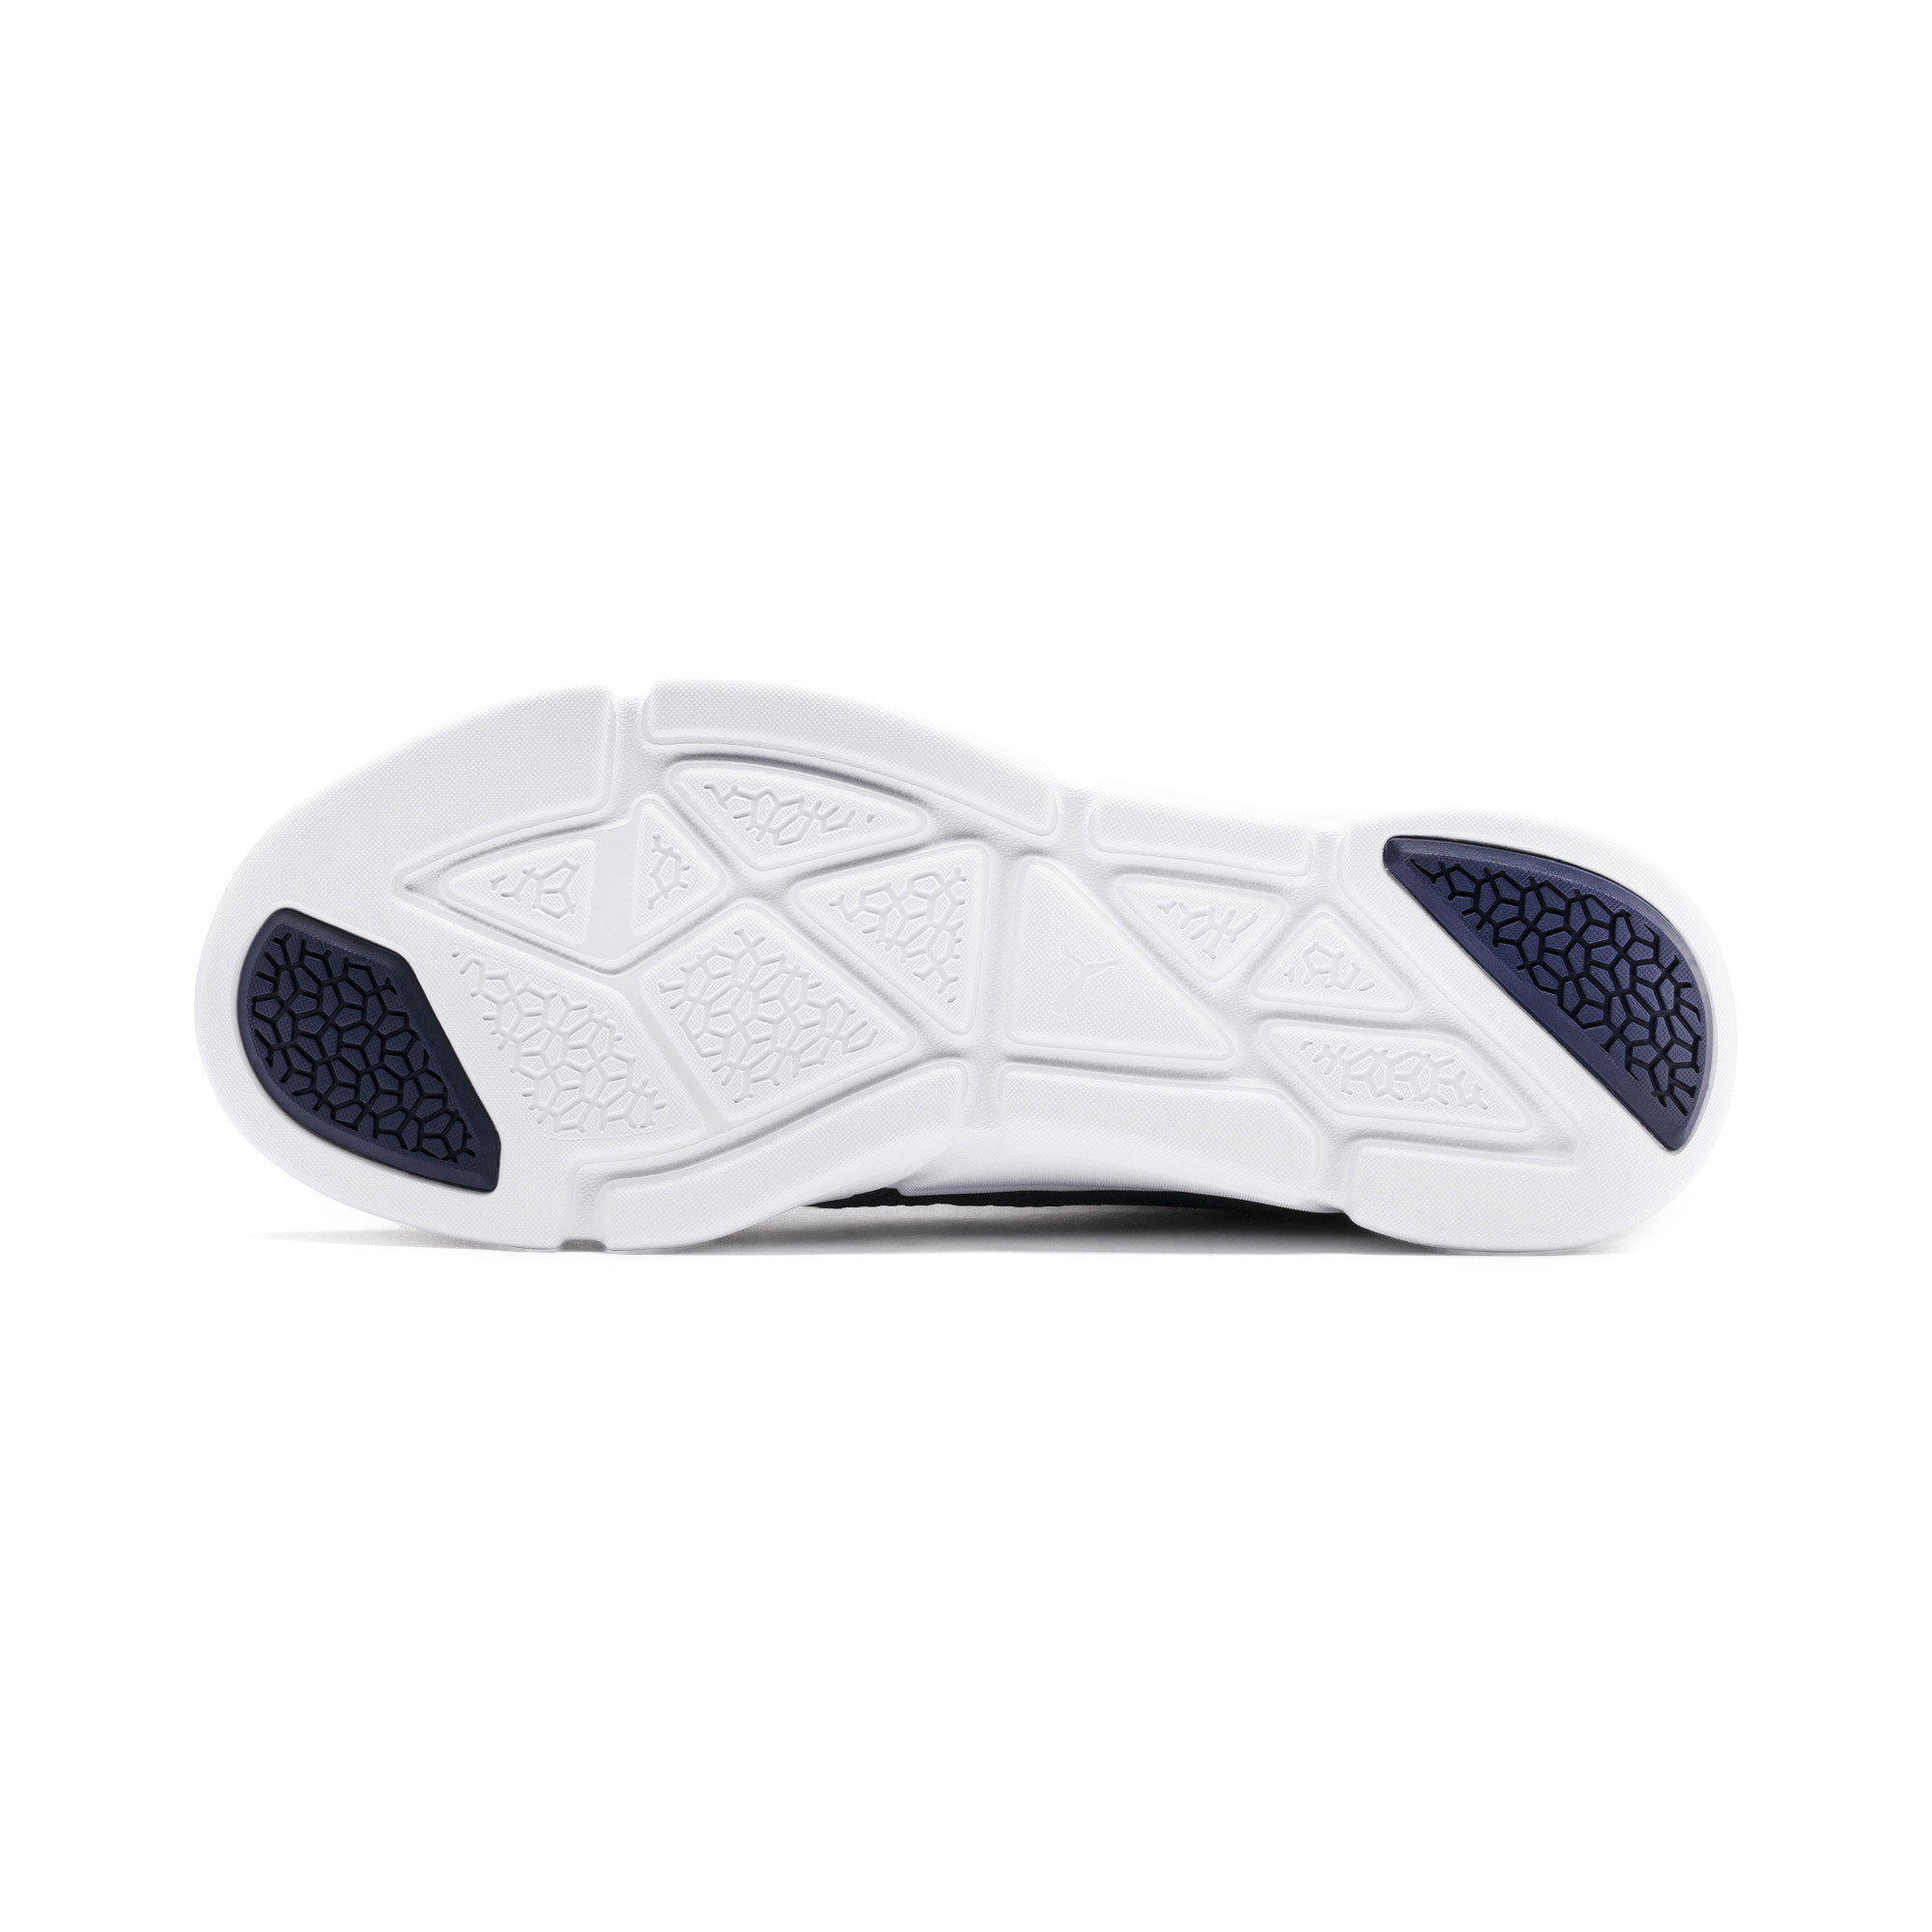 PUMA-INTERFLEX-Modern-Men-039-s-Sneakers-Unisex-Shoe-Running thumbnail 6